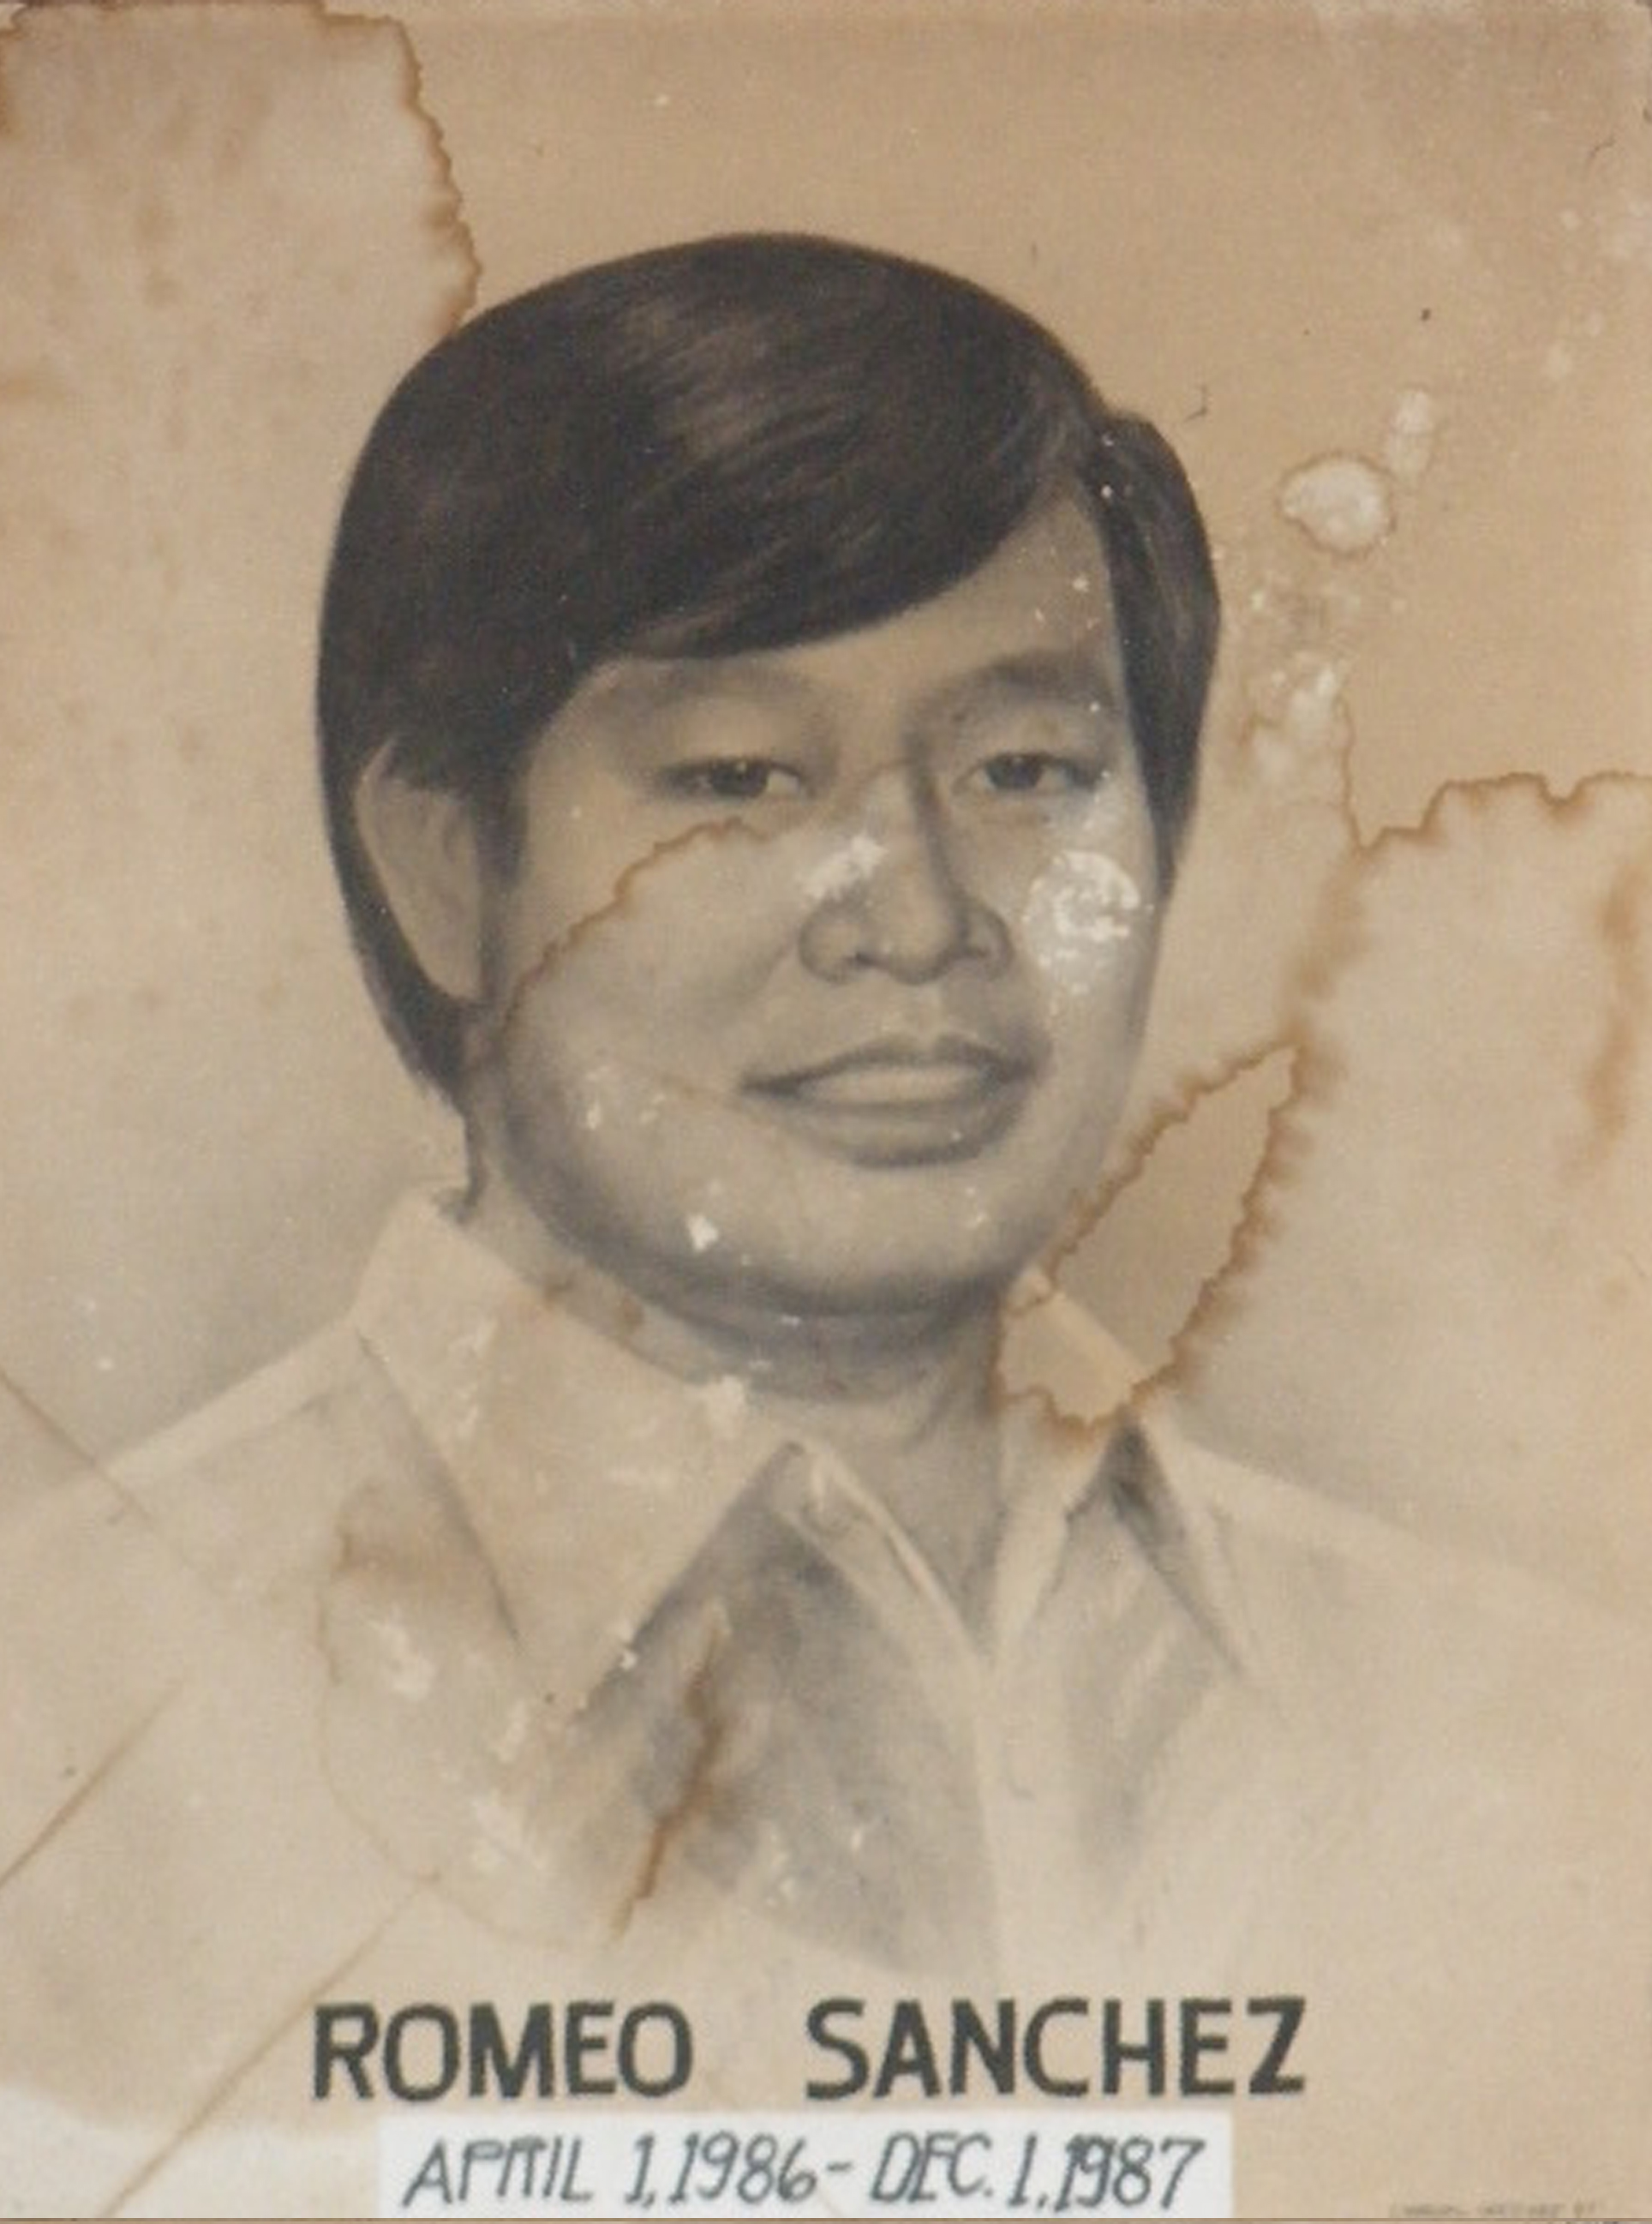 Mayor Romeo Sanchez (April 1 1986-Dec 1 1987)